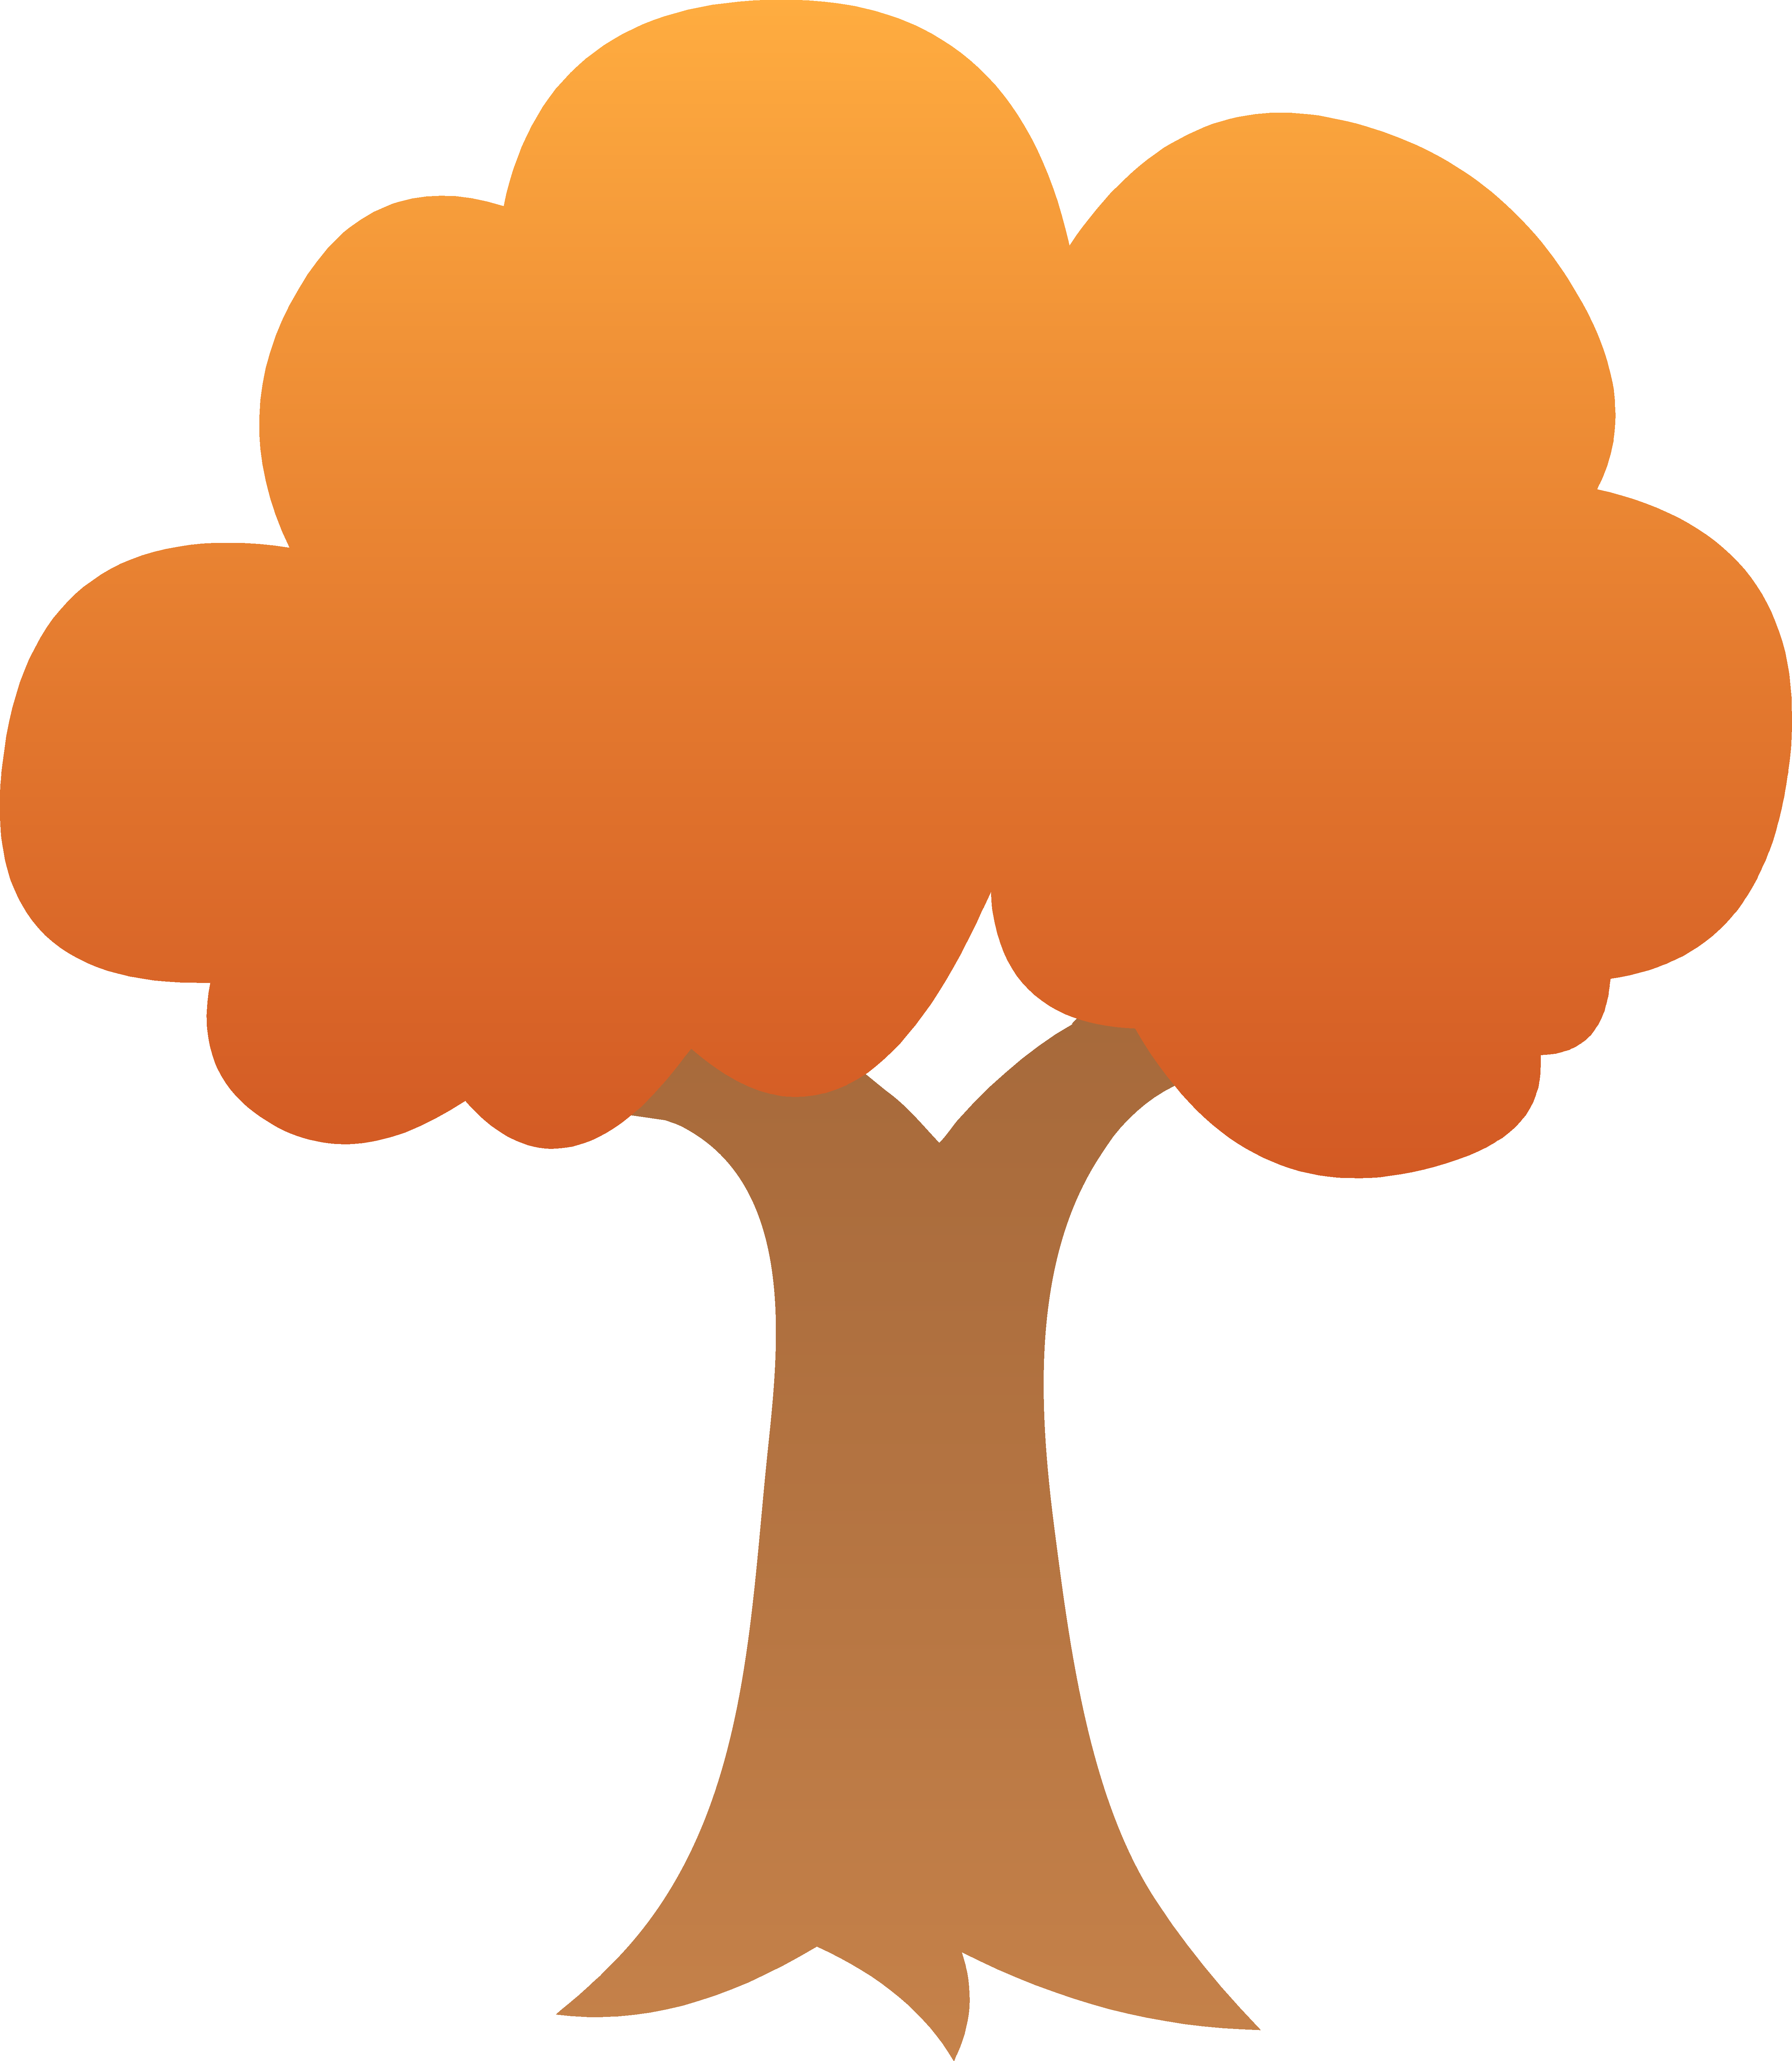 Free Fall Tree Clipart, Download Free Clip Art, Free Clip.